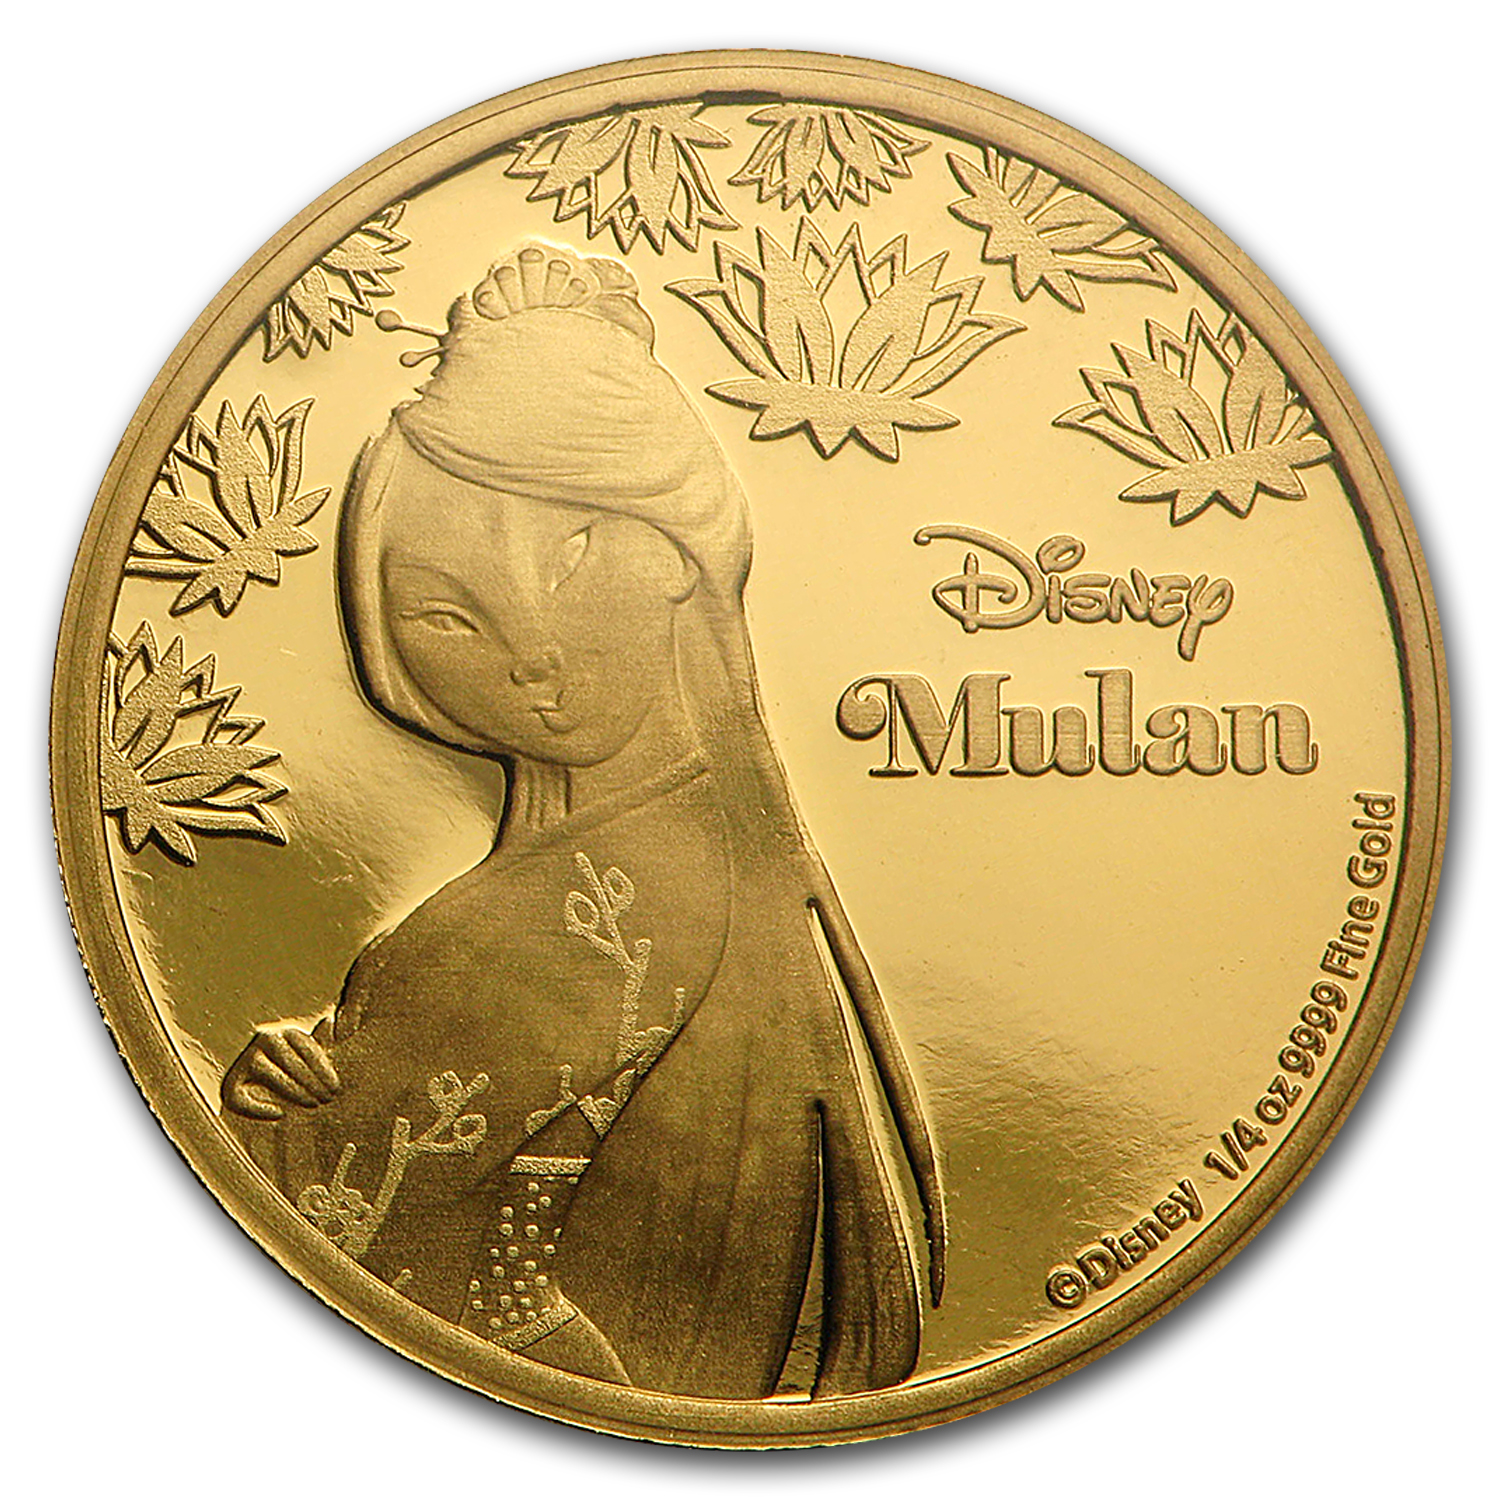 2016 Niue 1/4 oz Proof Gold $25 Disney Princess Mulan